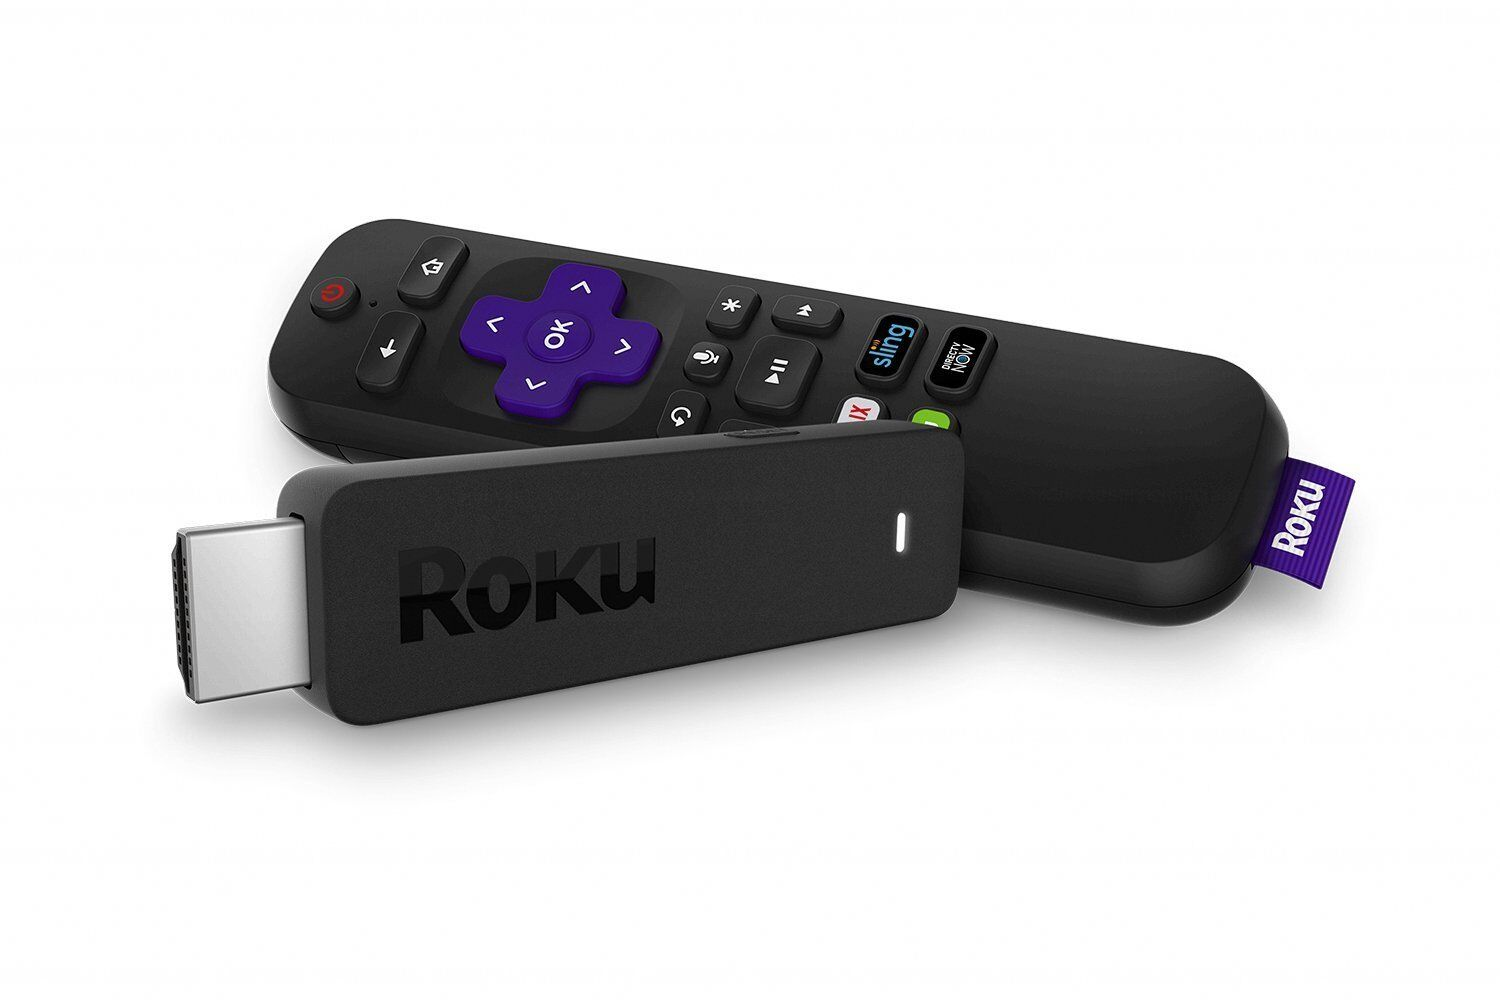 Roku Streaming Stick | Portable, Power-Packed Streaming Device with Voice Remote Consumer Electronics